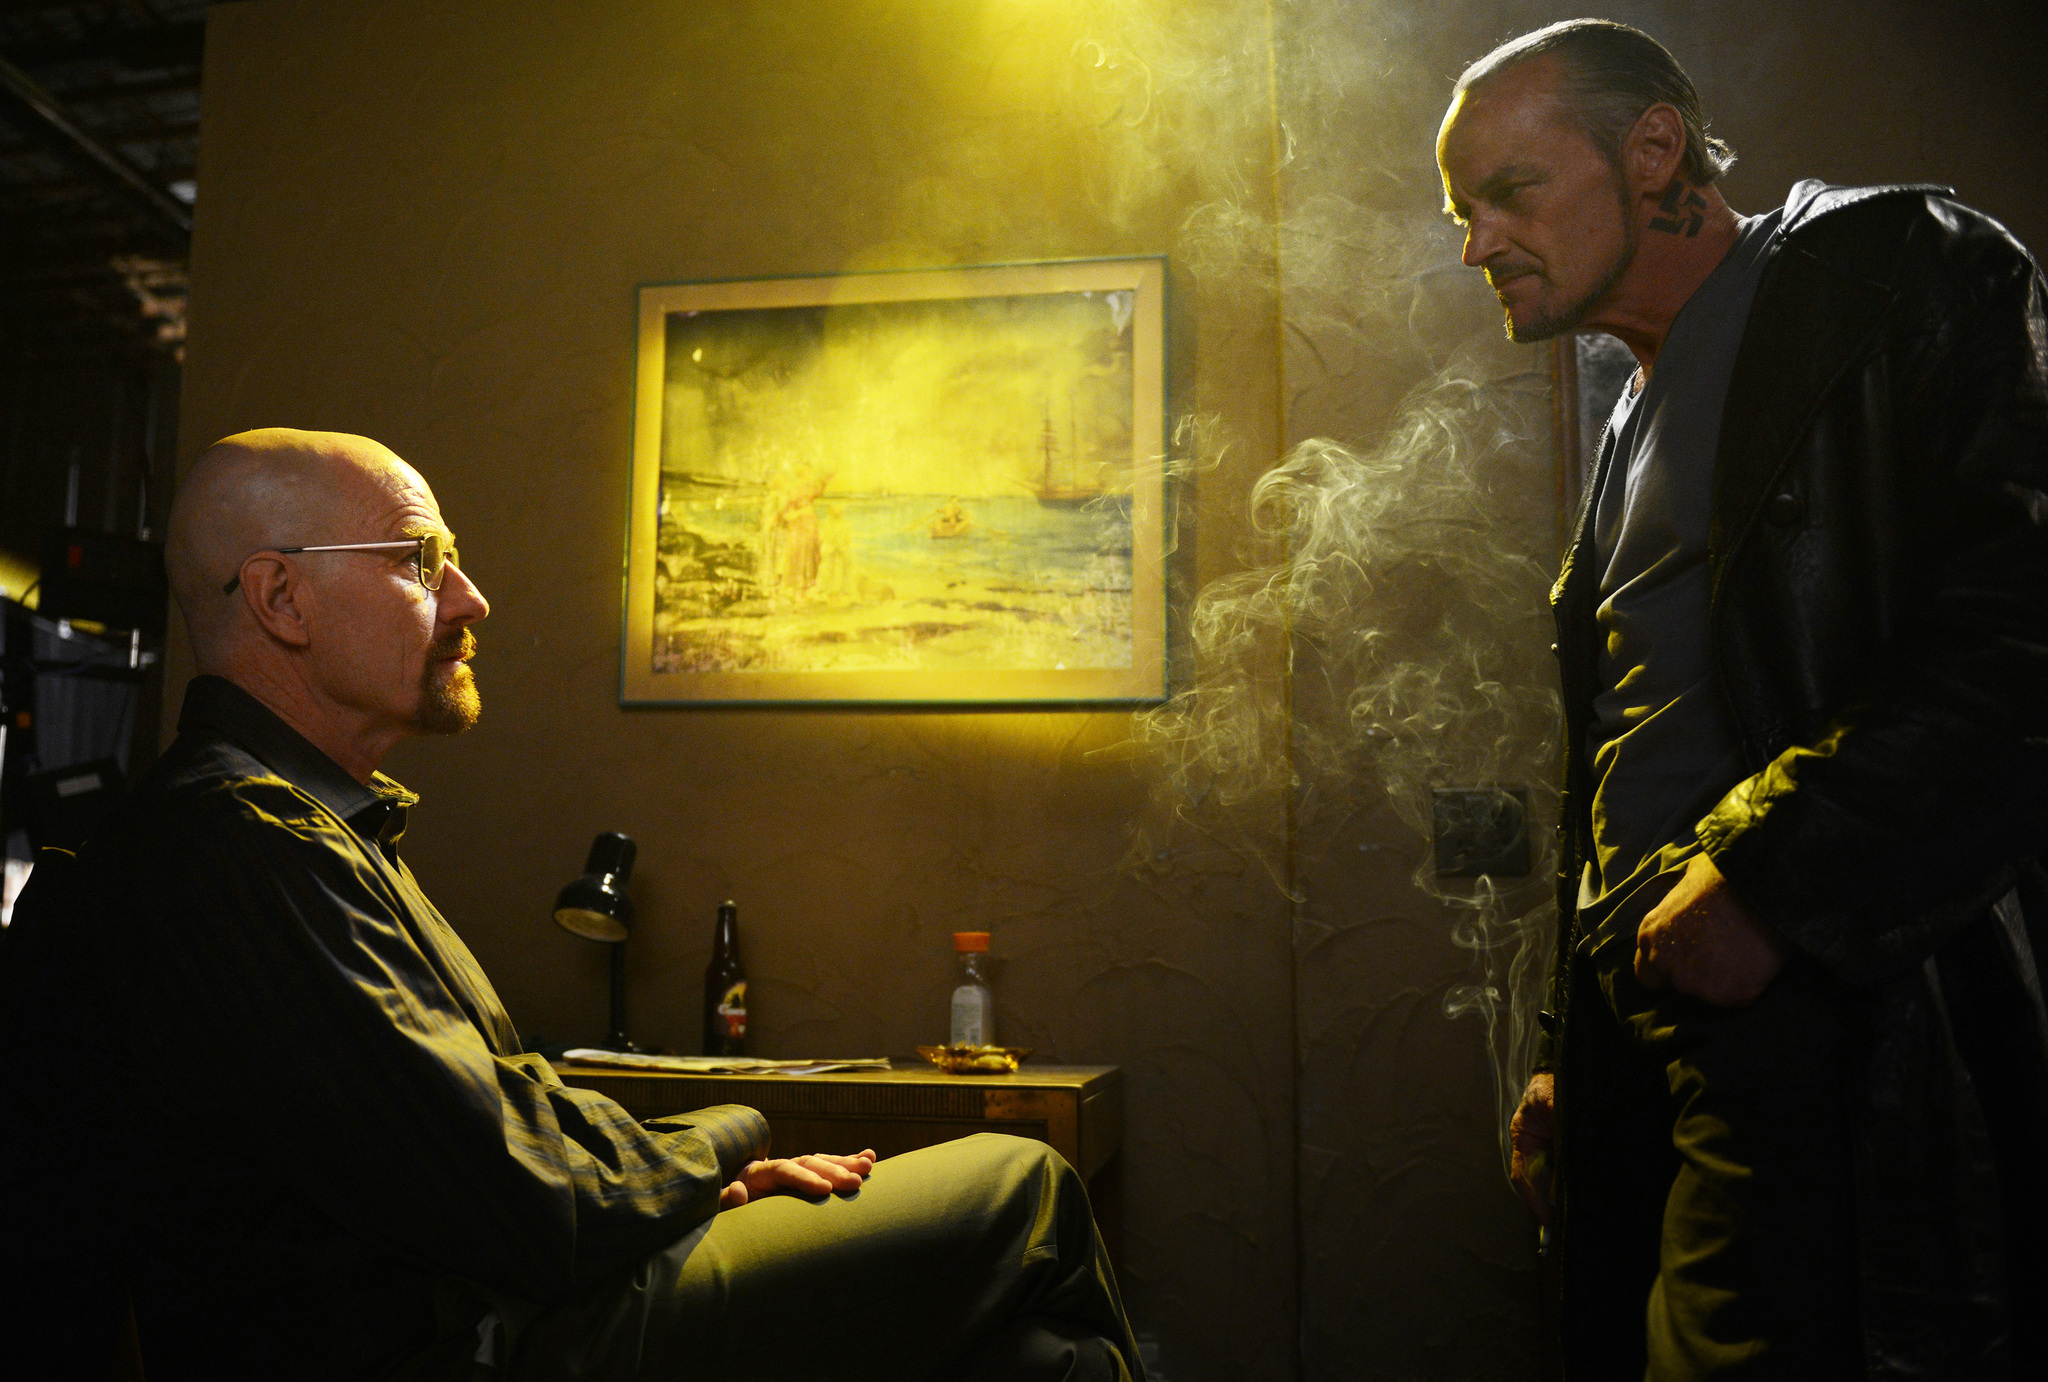 The fifth and final season of the American television drama series Breaking Bad premiered on July 15 2012 and concluded on September 29 2013 on AMC in the United